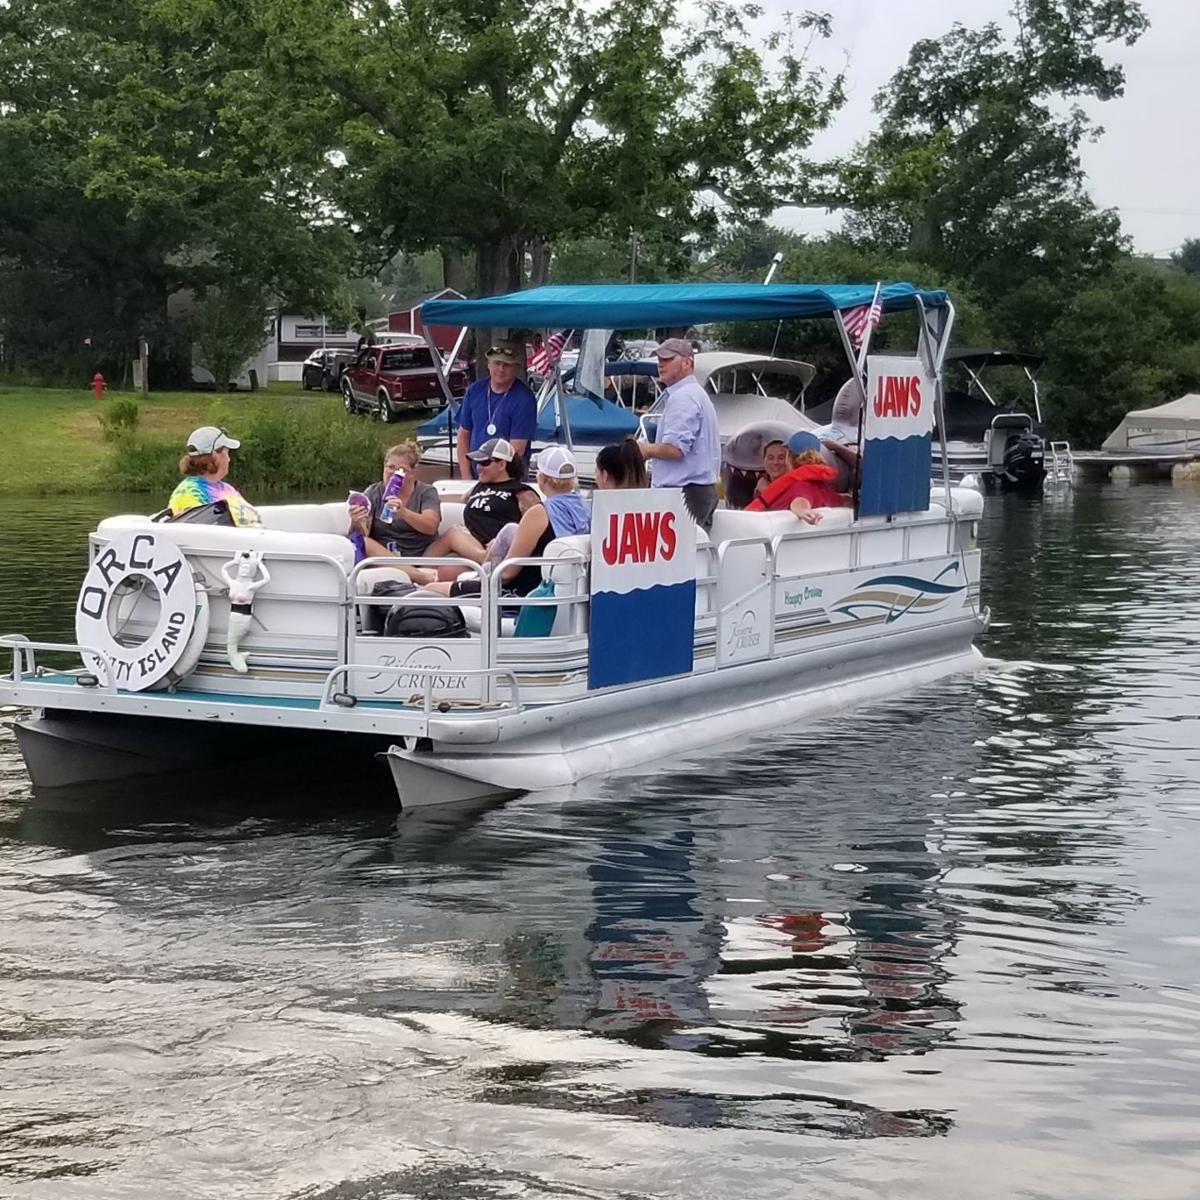 Jaws boat